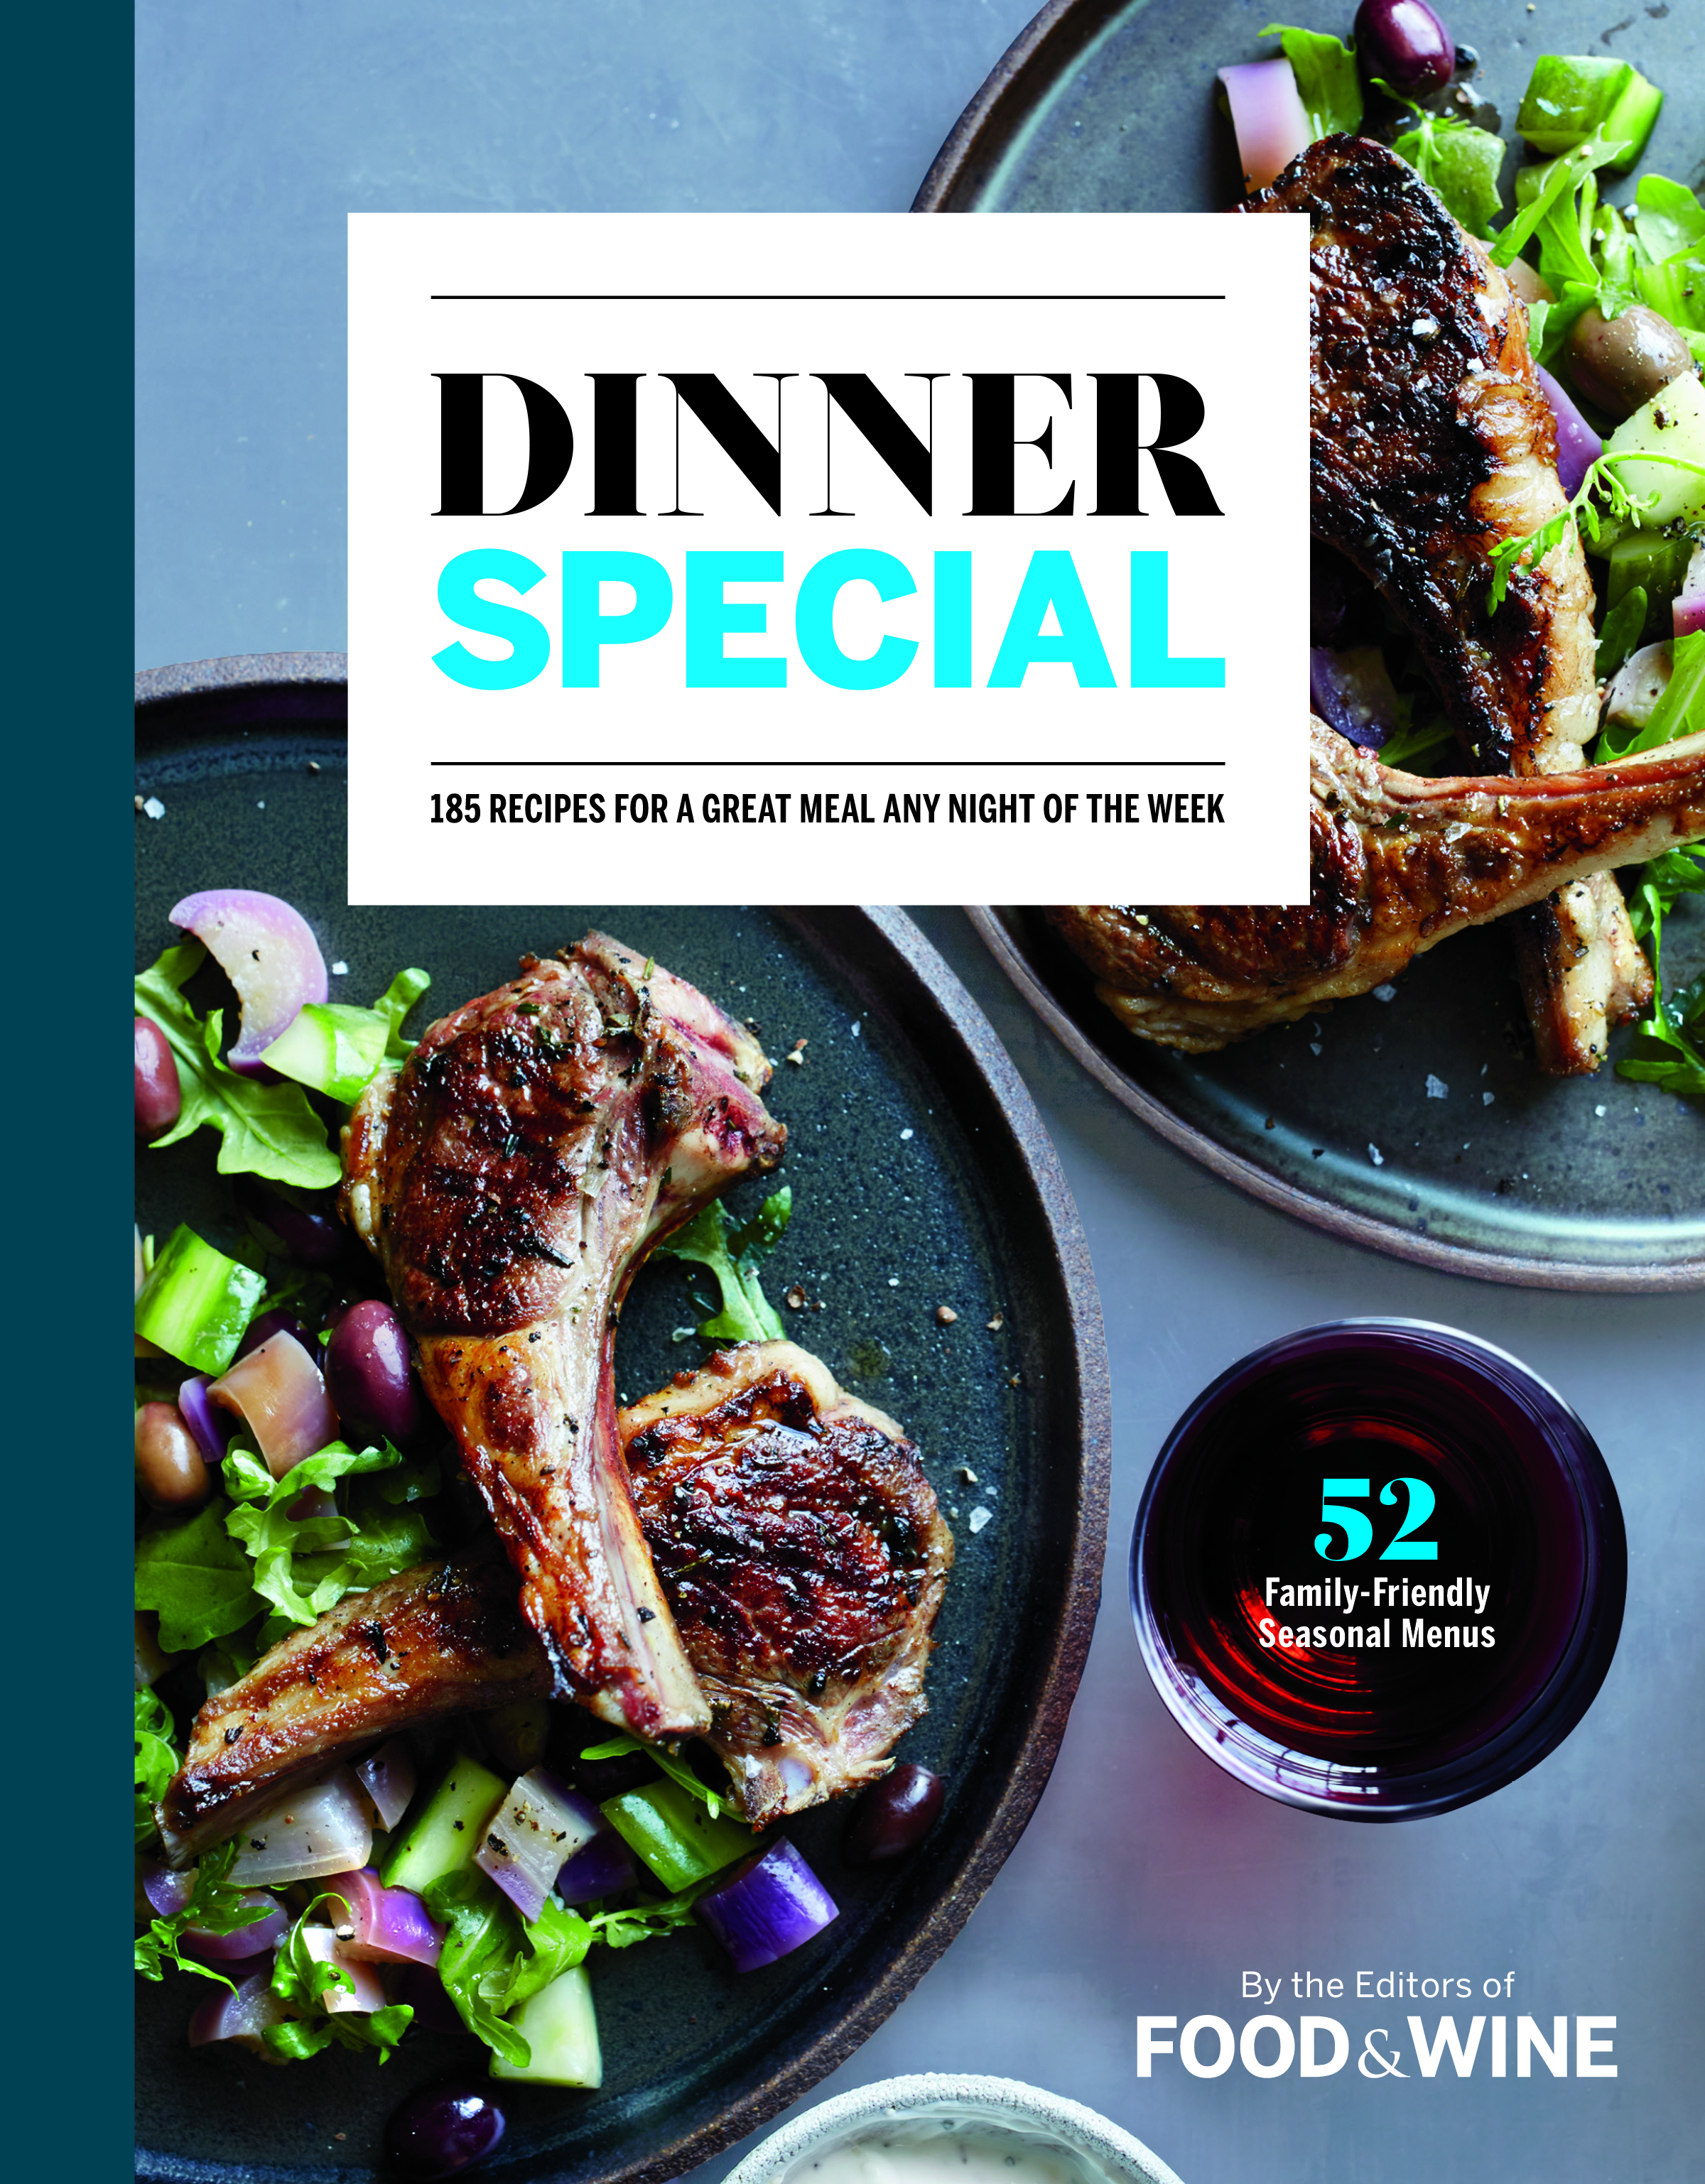 DinnerSpecial_Cover_HIGH_0206.jpg